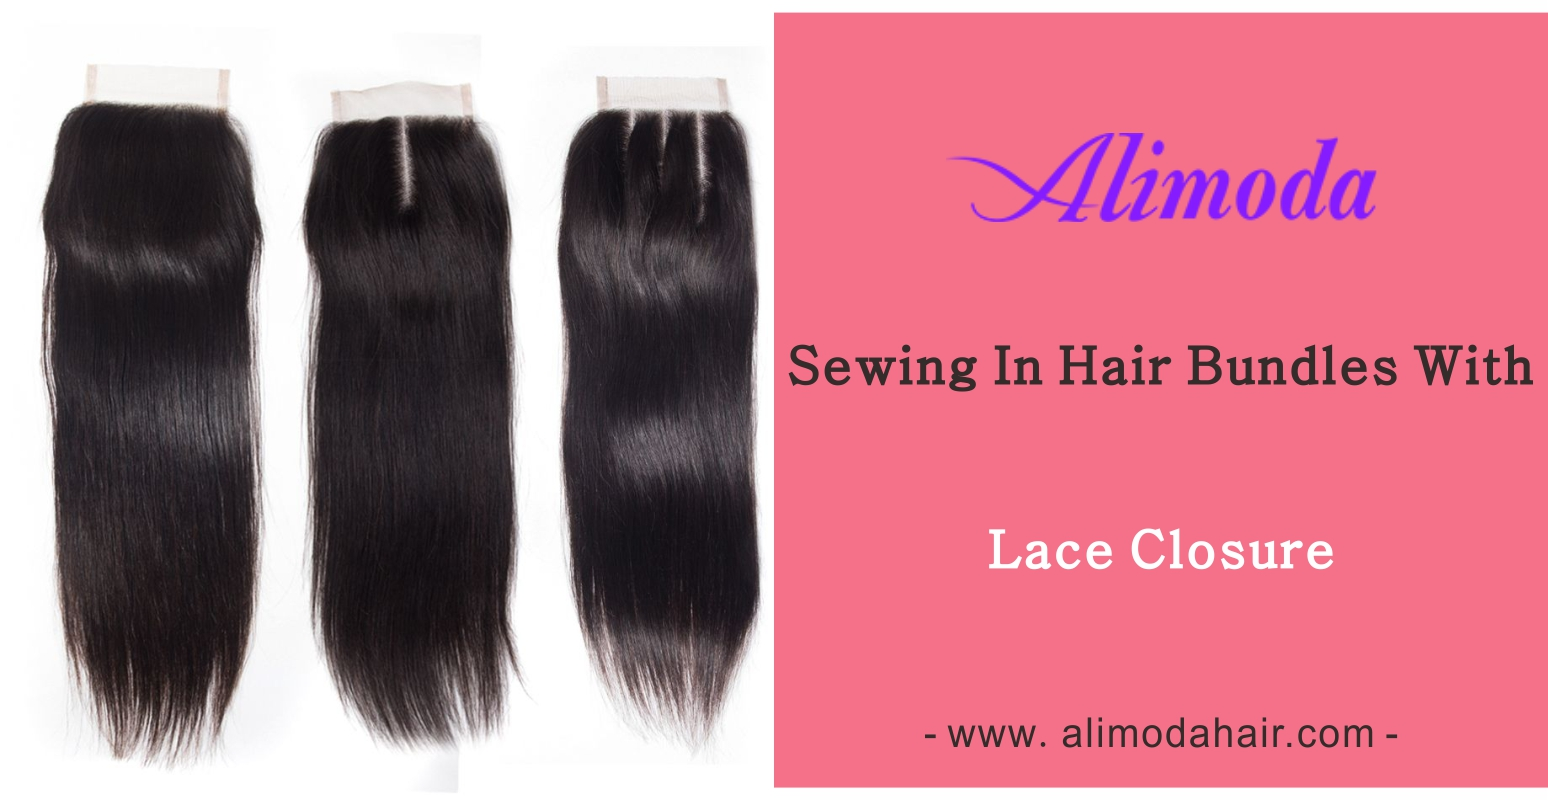 Sew in hair bundles with lace closure